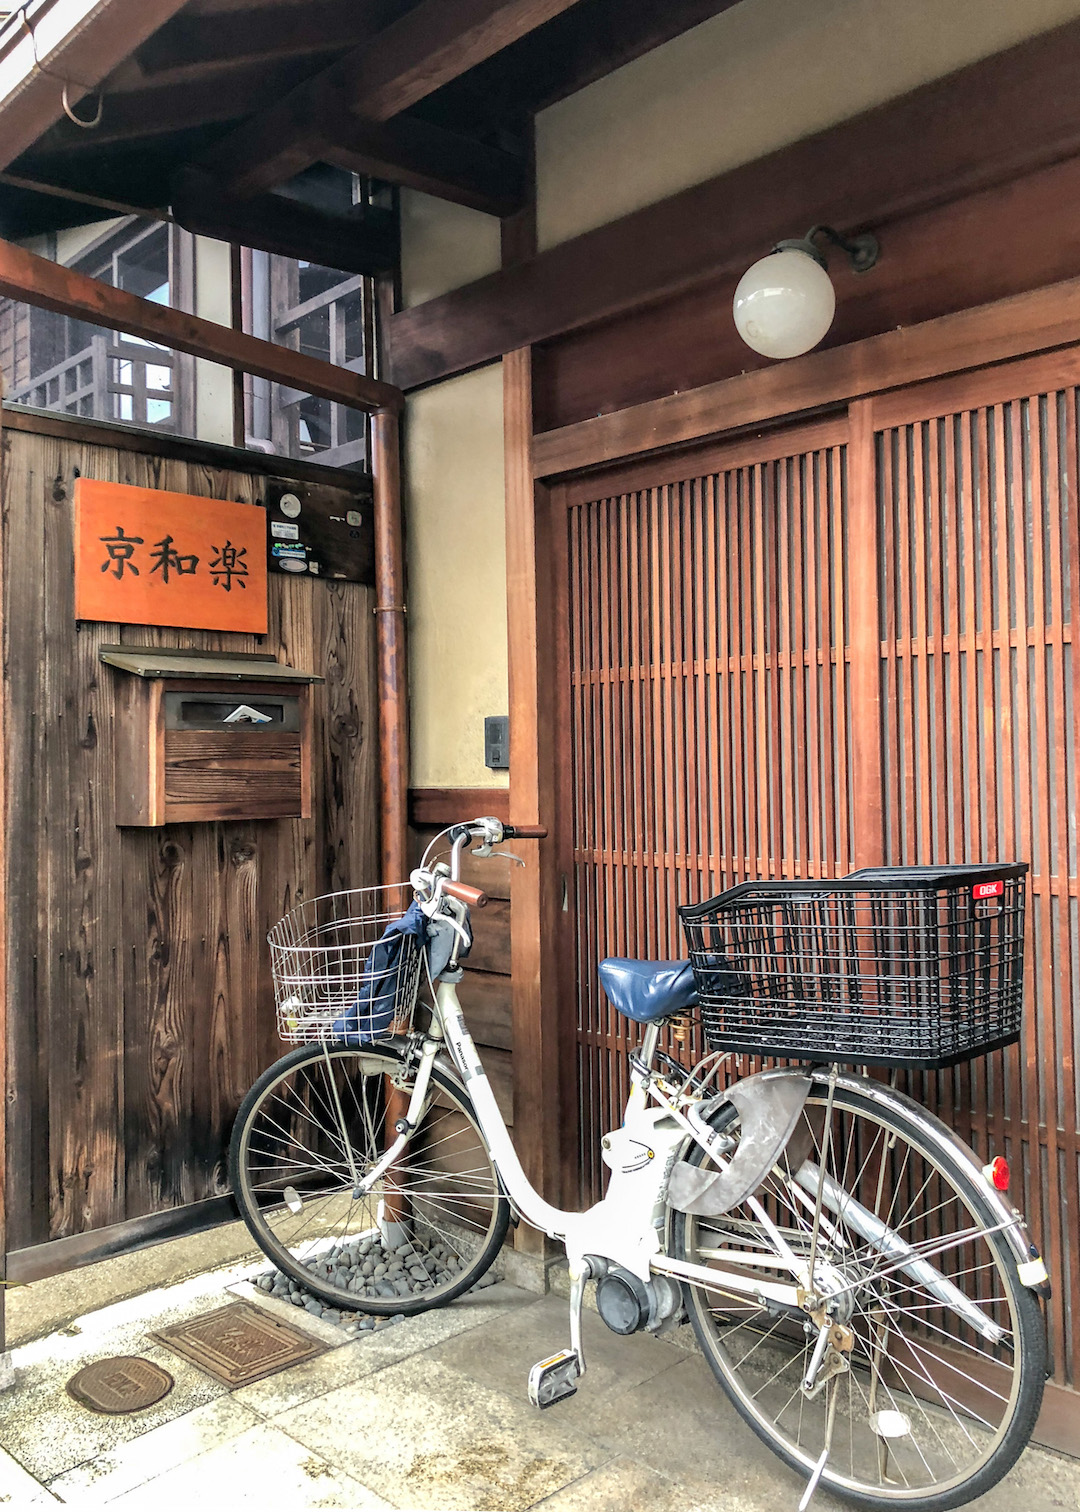 Bicycle in front of a traditional Japanese house in Kyoto